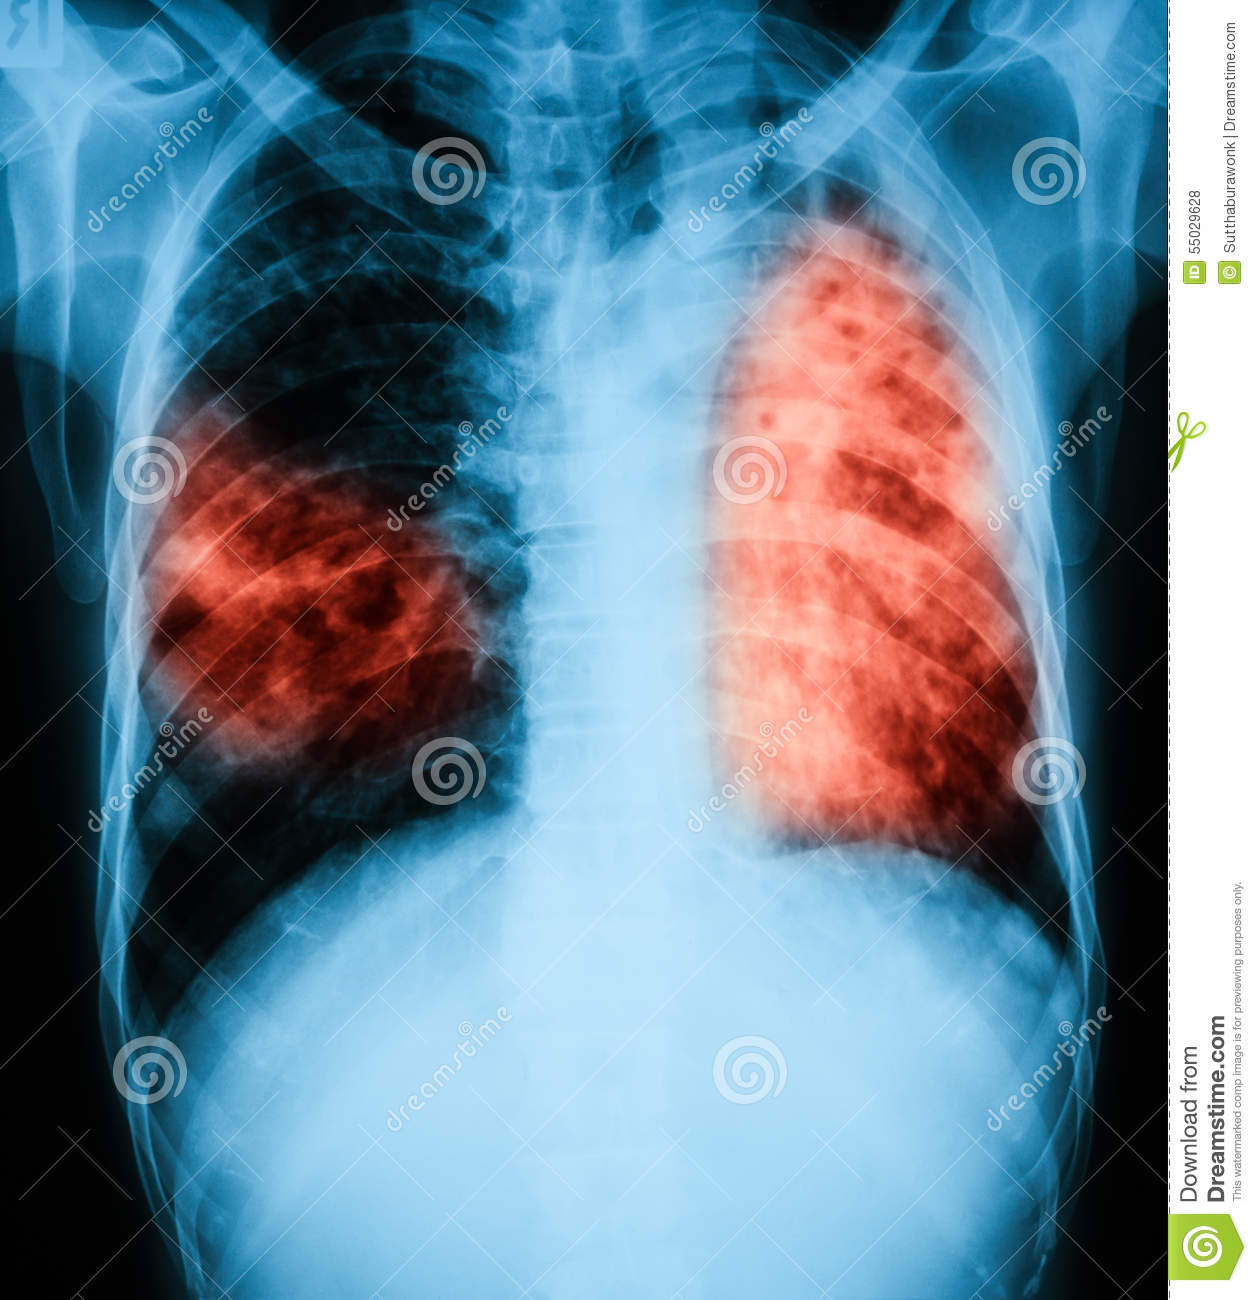 Chest x-ray image of a patient with pulmonary tuberculosis.